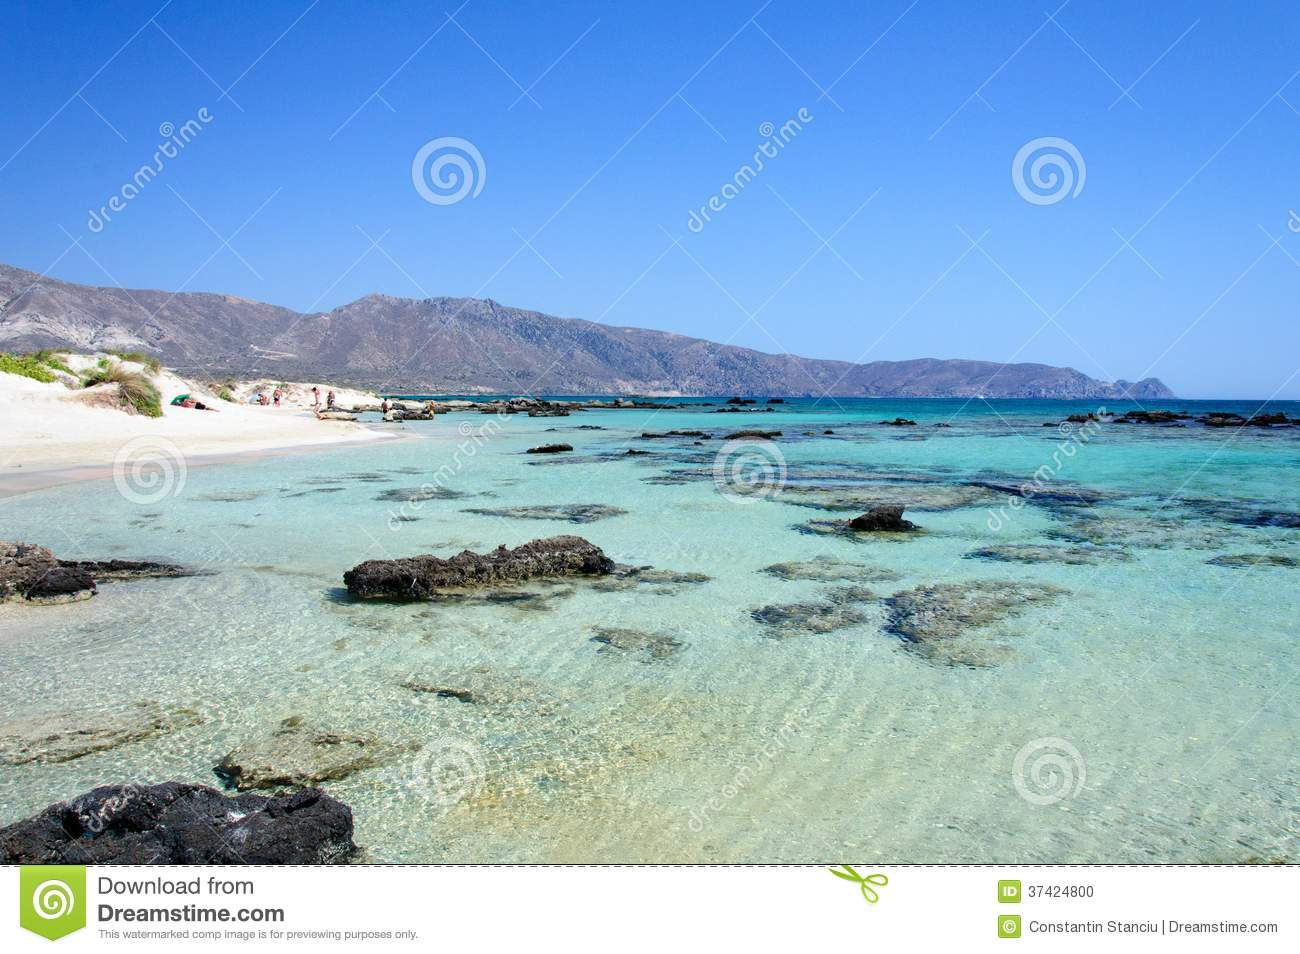 Elafonissi Beach, With Pinkish White Sand And Turquoise Water.